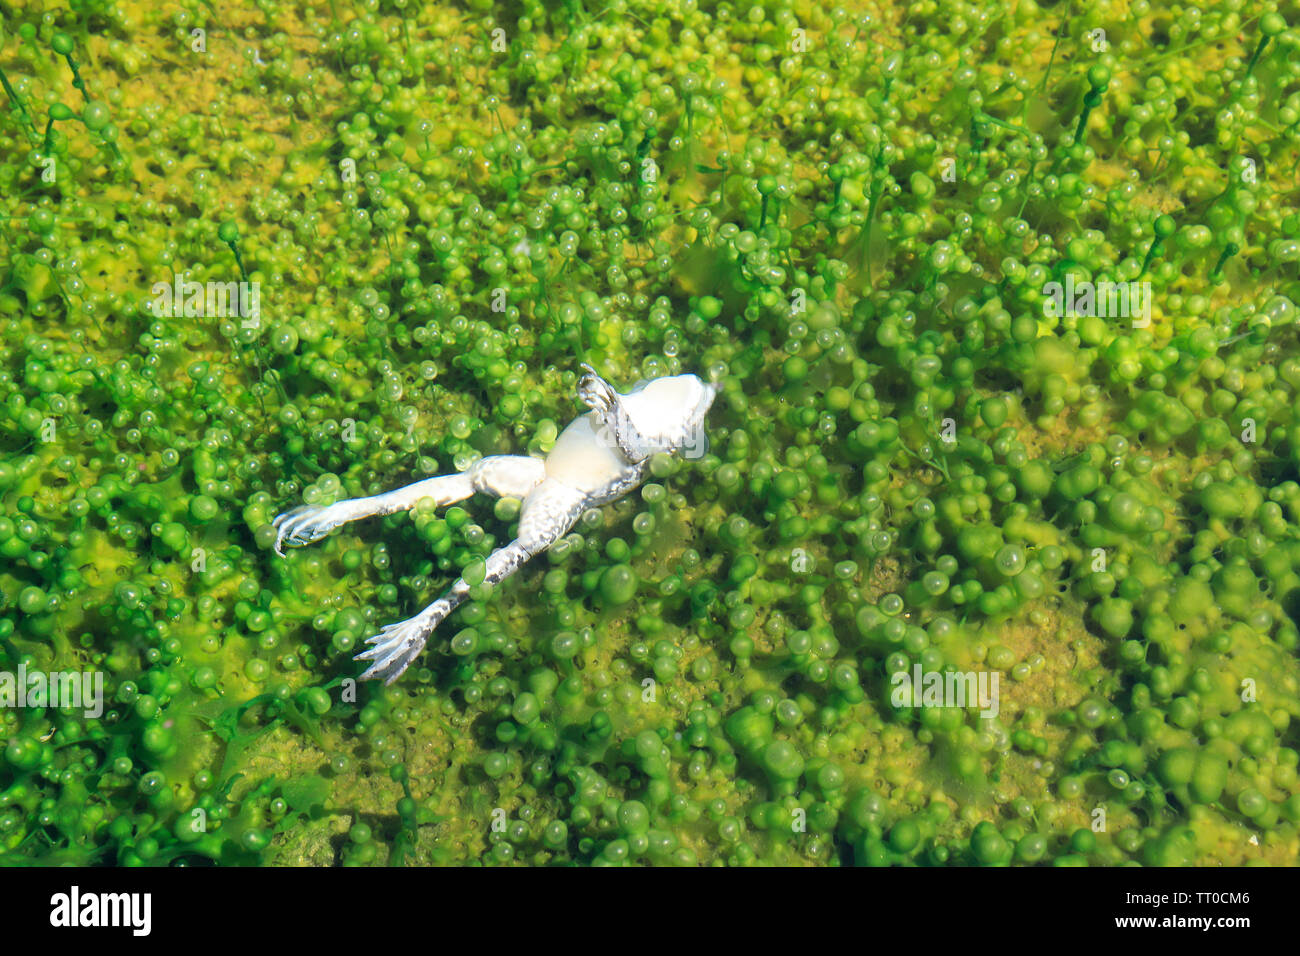 Dead frog in the water. Rana temporaria - Stock Image